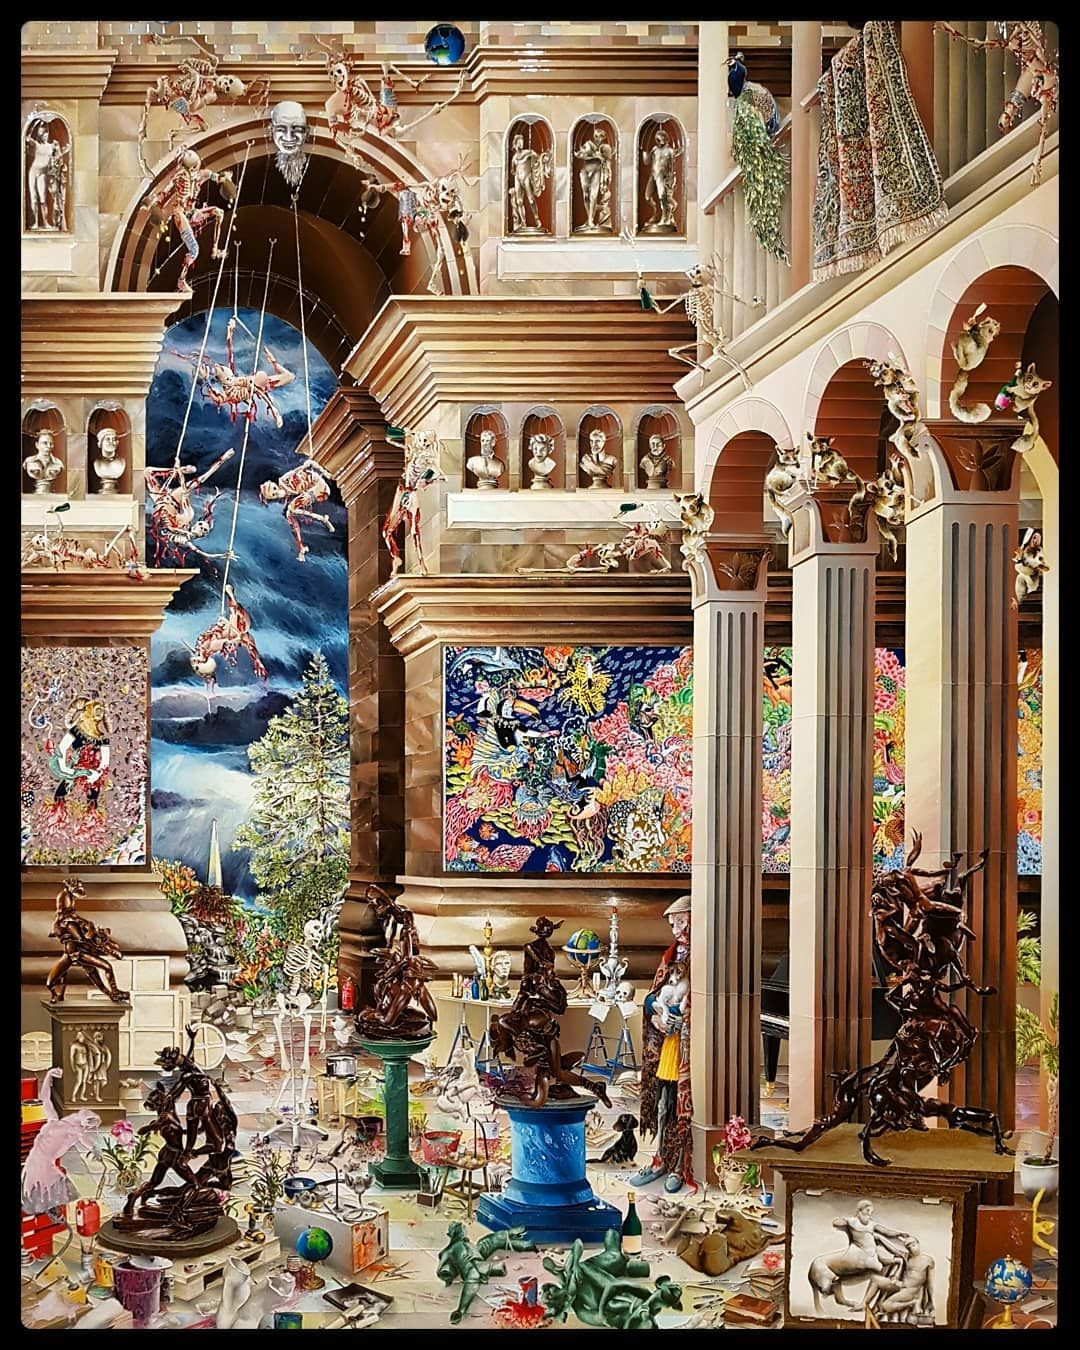 Raqib Shaw exhibition yesterday  #edinburgh #edinburghlife #edinburghhighlights #edinburghcity #city #citylove #citylife #citytrip #cityscape #cityphotography #scotland #scottish #scottishsummer #summer #august #historic #history #modern #art #modernart #exhibition #painter #artist #oil #painting #raqibshaw #bright #colourful #colorful #colour